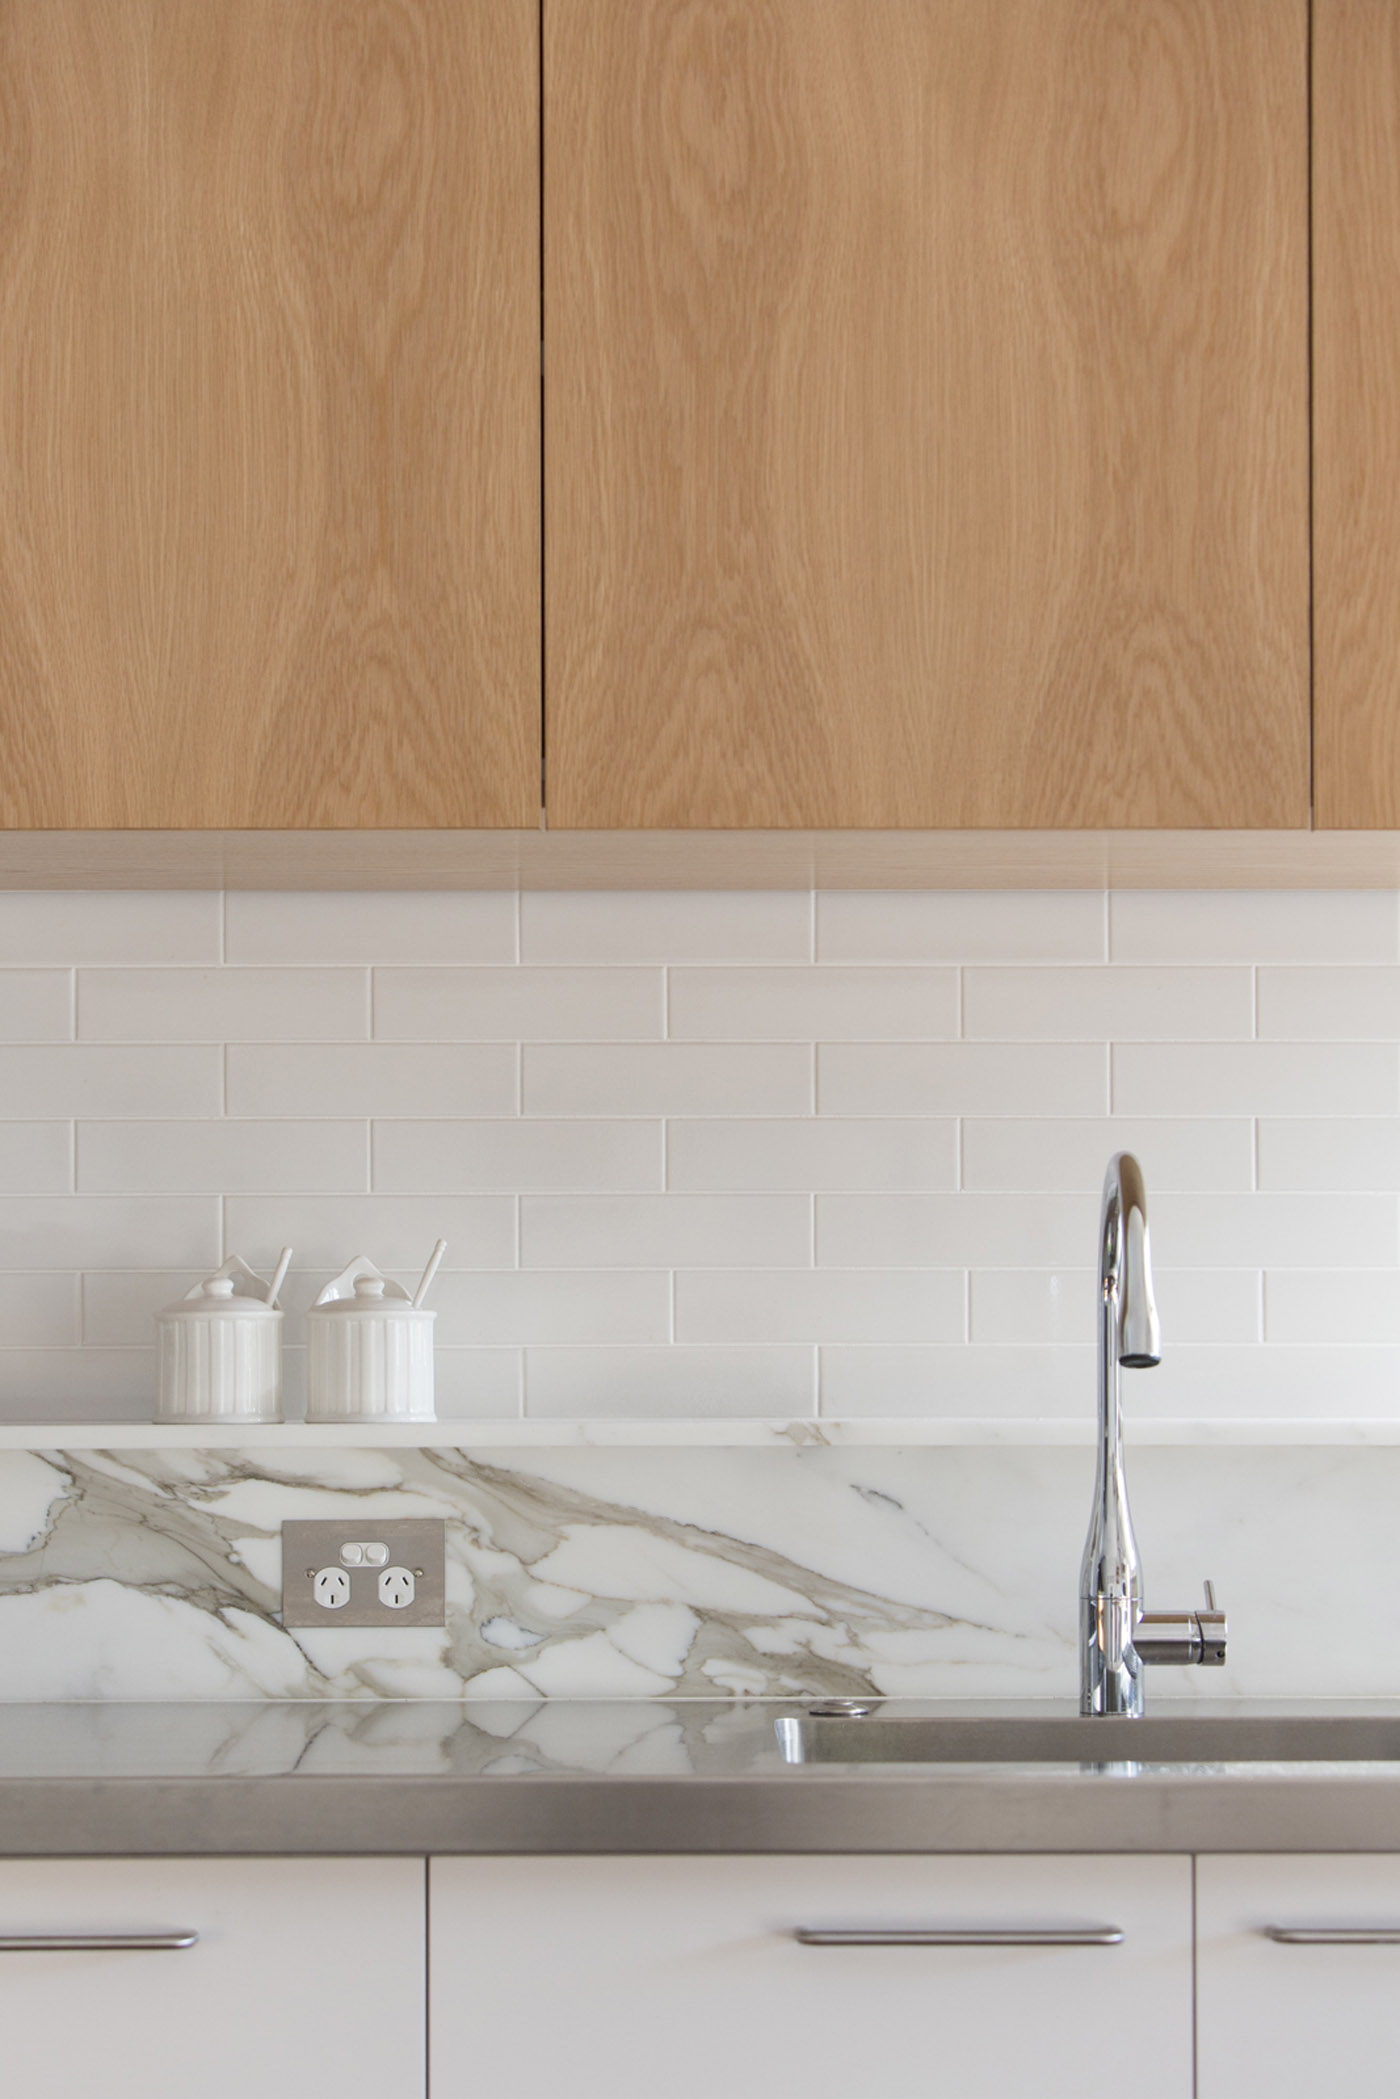 Gandha Kariappa Terrace by Sydney residential architects Sam Crawford Architects. Detail of calacatta marble ledge, stainless steel benchtop, white tiled splashback and white kitchen joinery